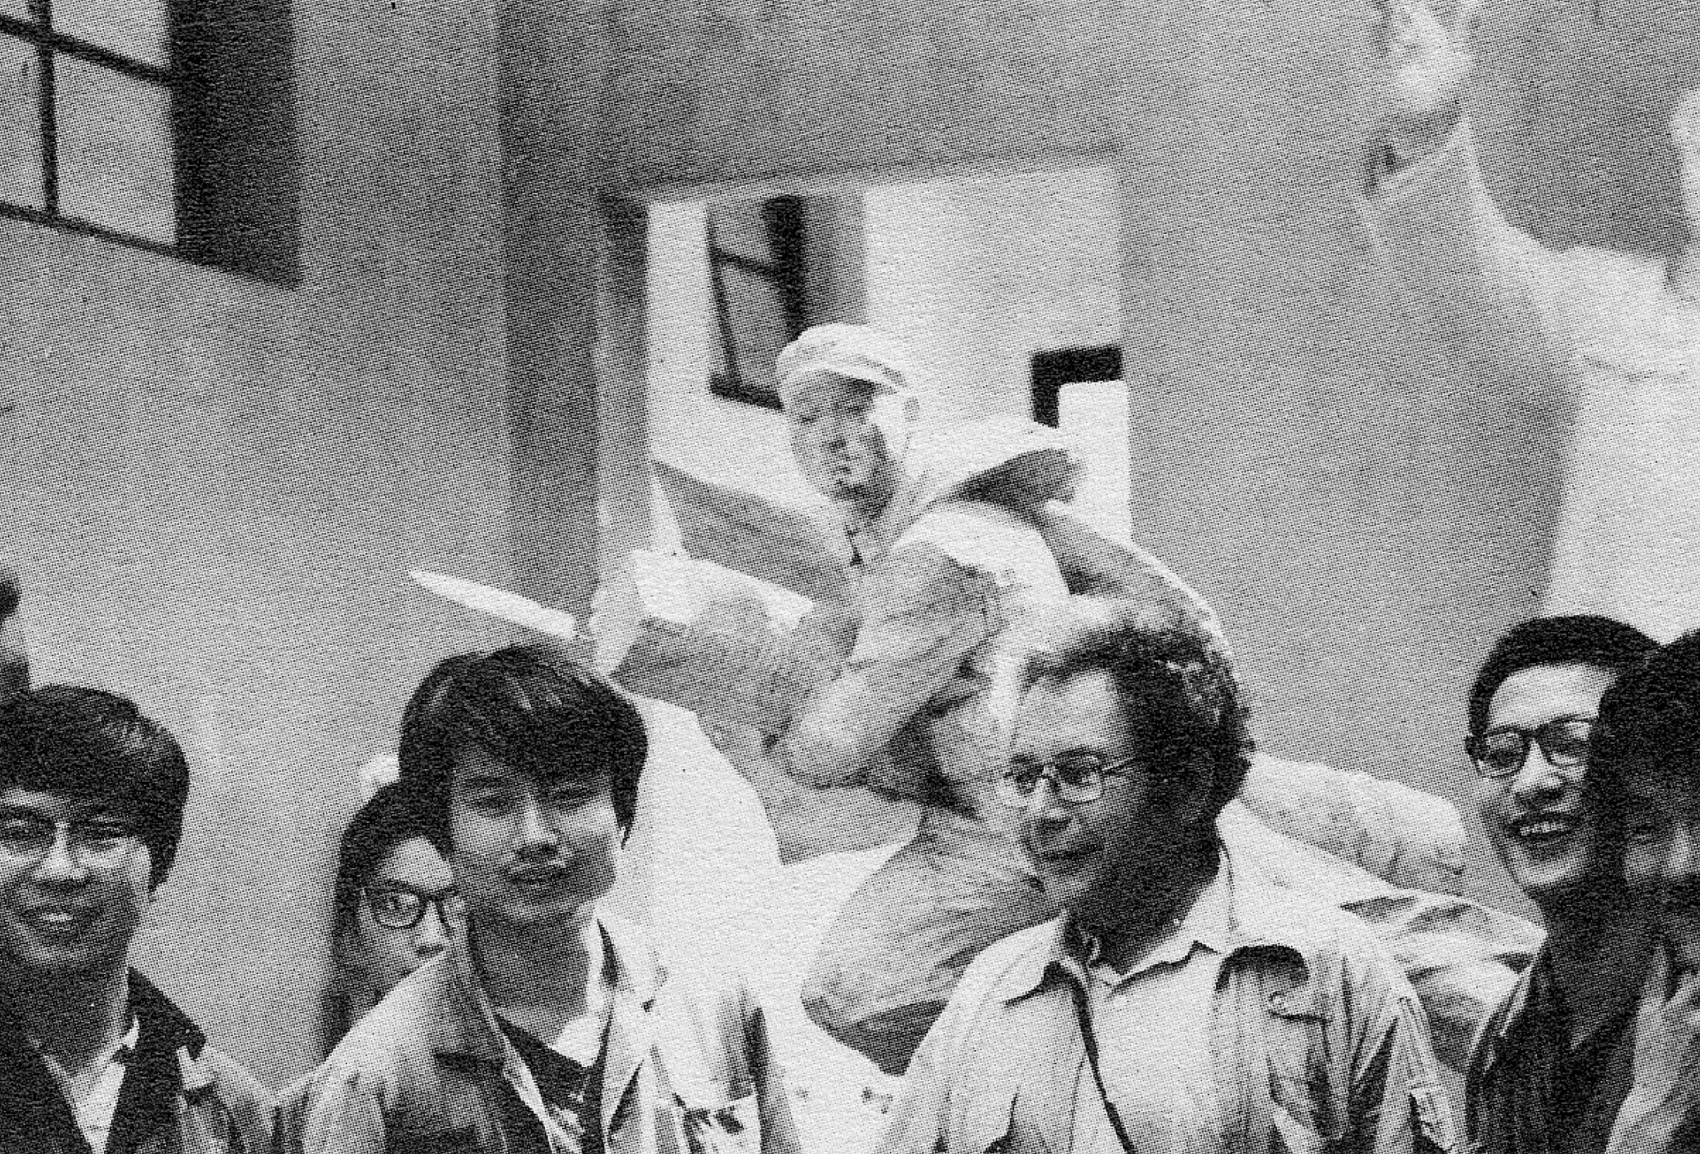 Sculptor George Segal with students at the Zhejiang Academy of Fine Arts, Hangzhou